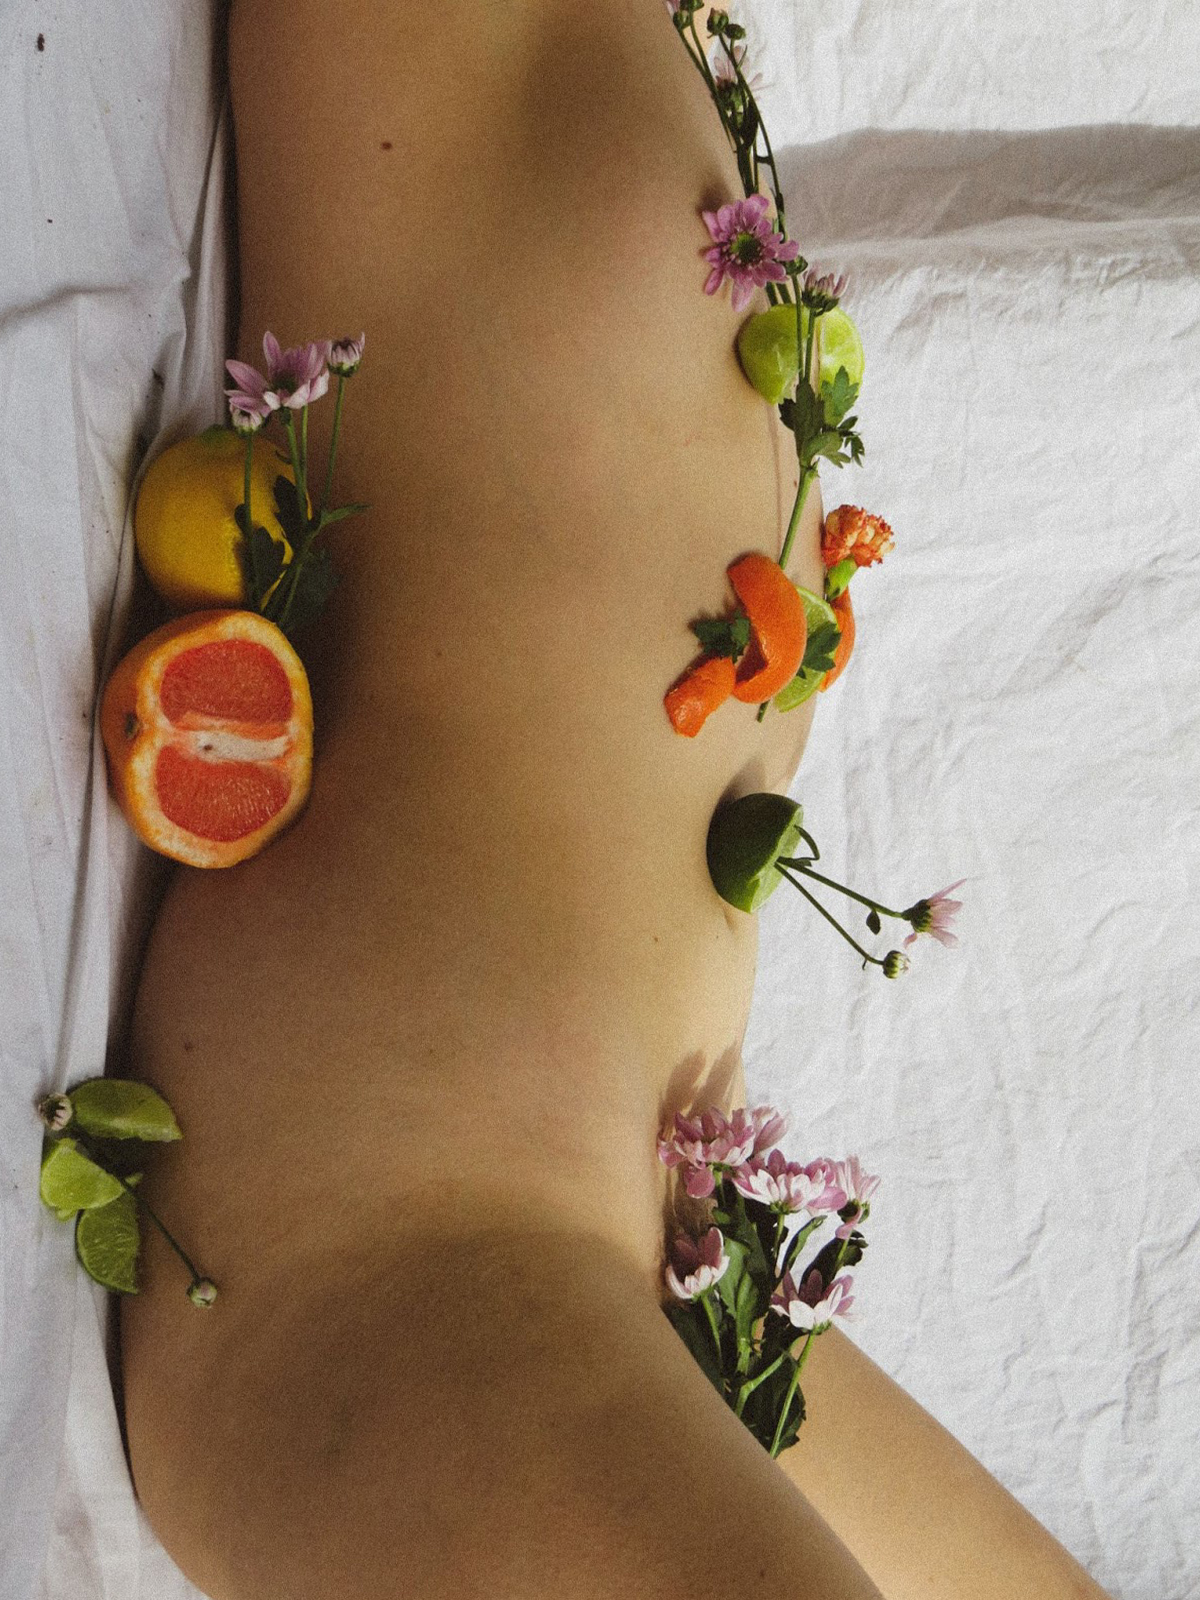 Image of a body covered in citrus fruits and flowers